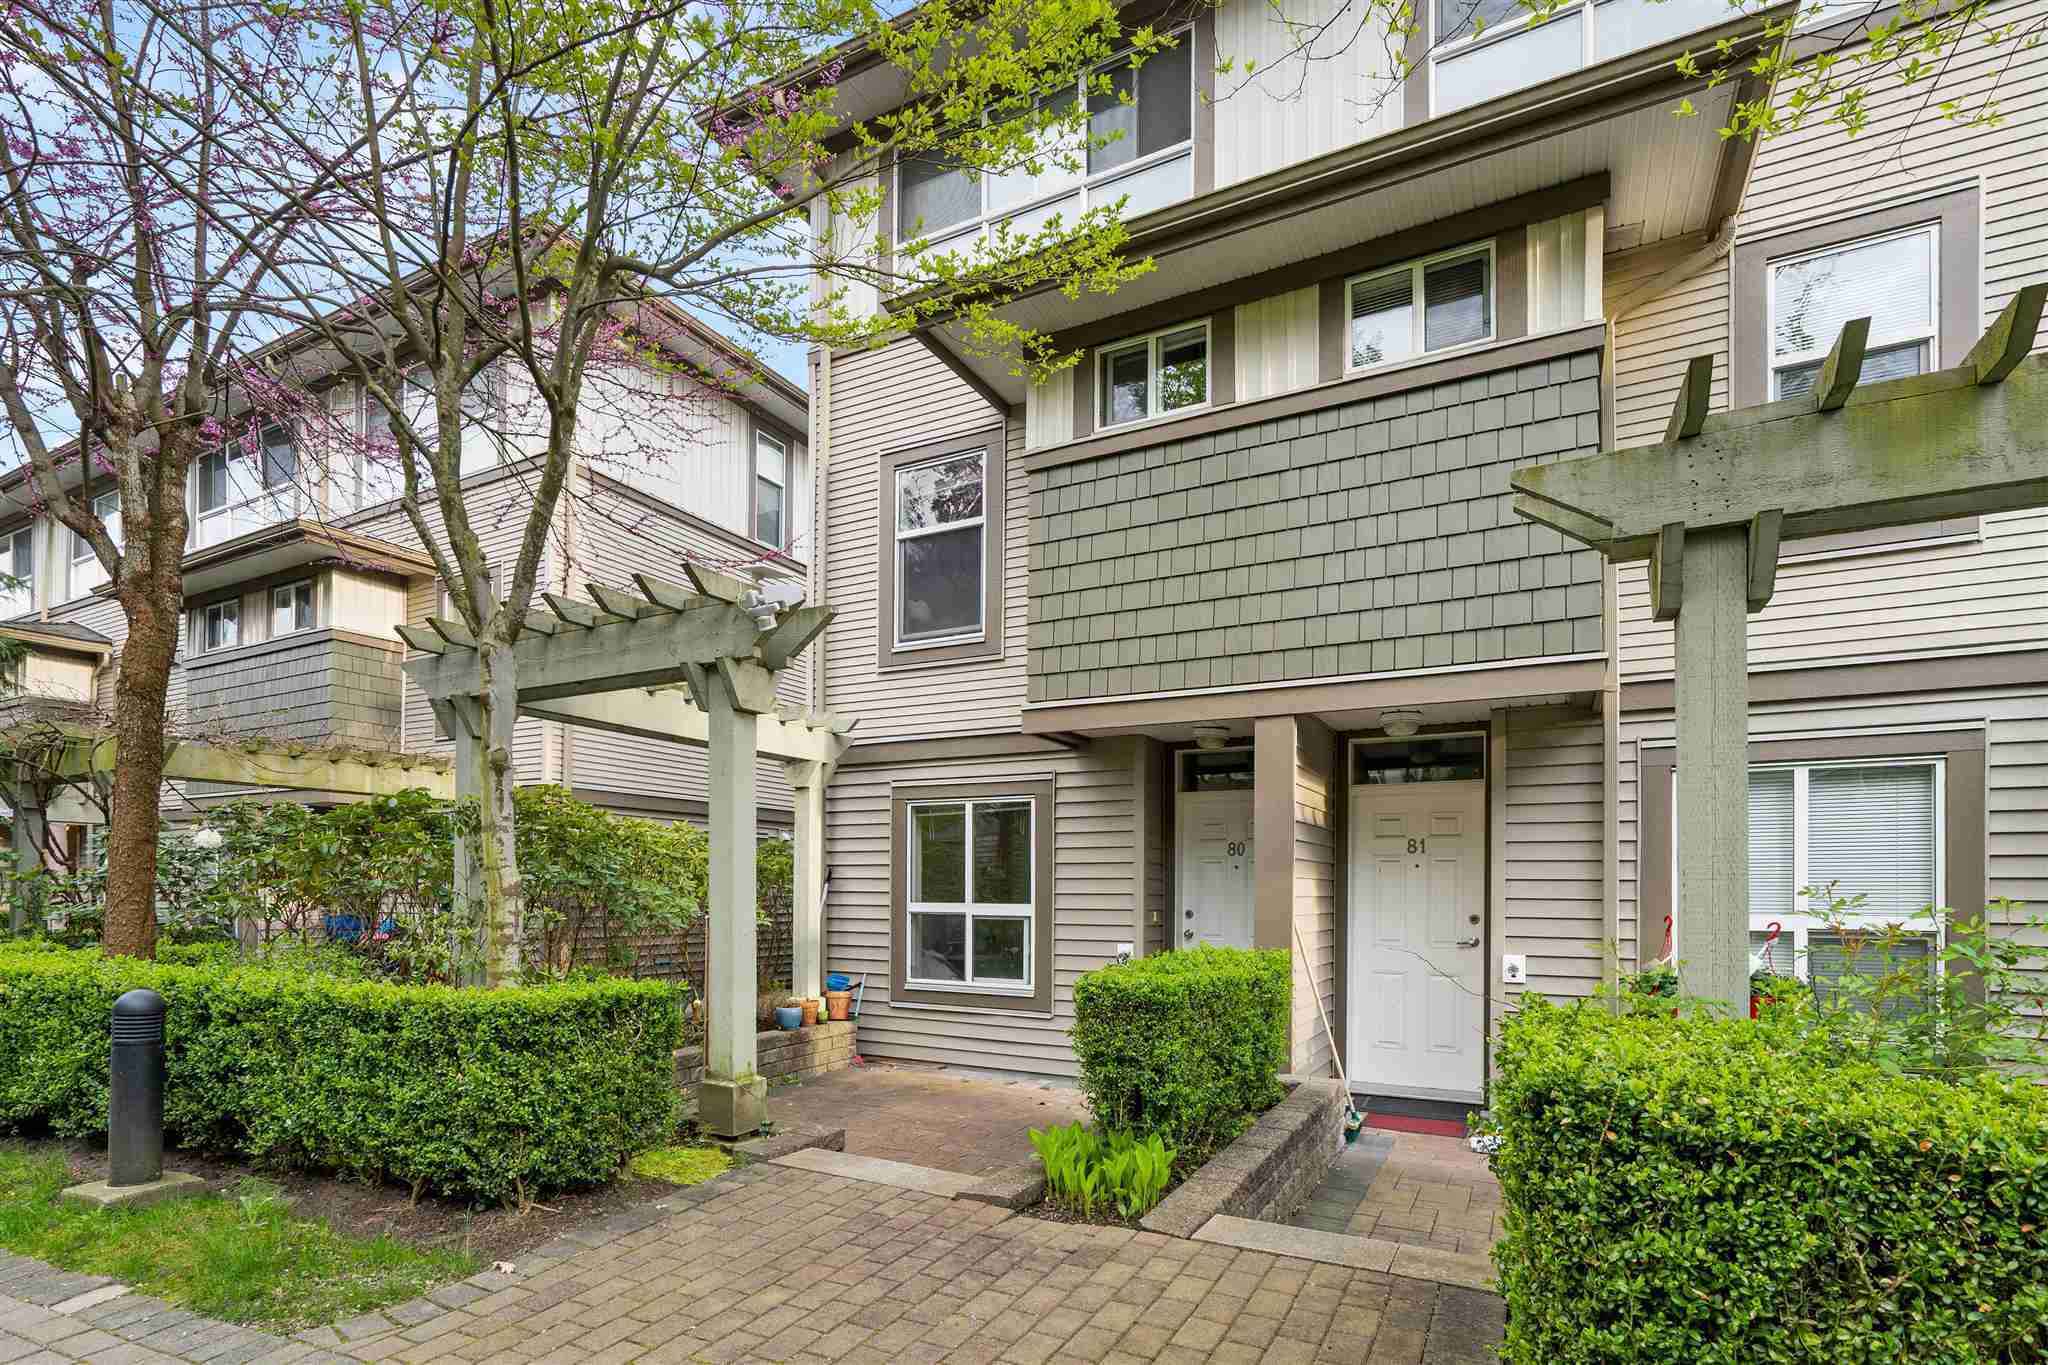 80 15353 100 AVENUE - Guildford Townhouse for sale, 3 Bedrooms (R2601527)